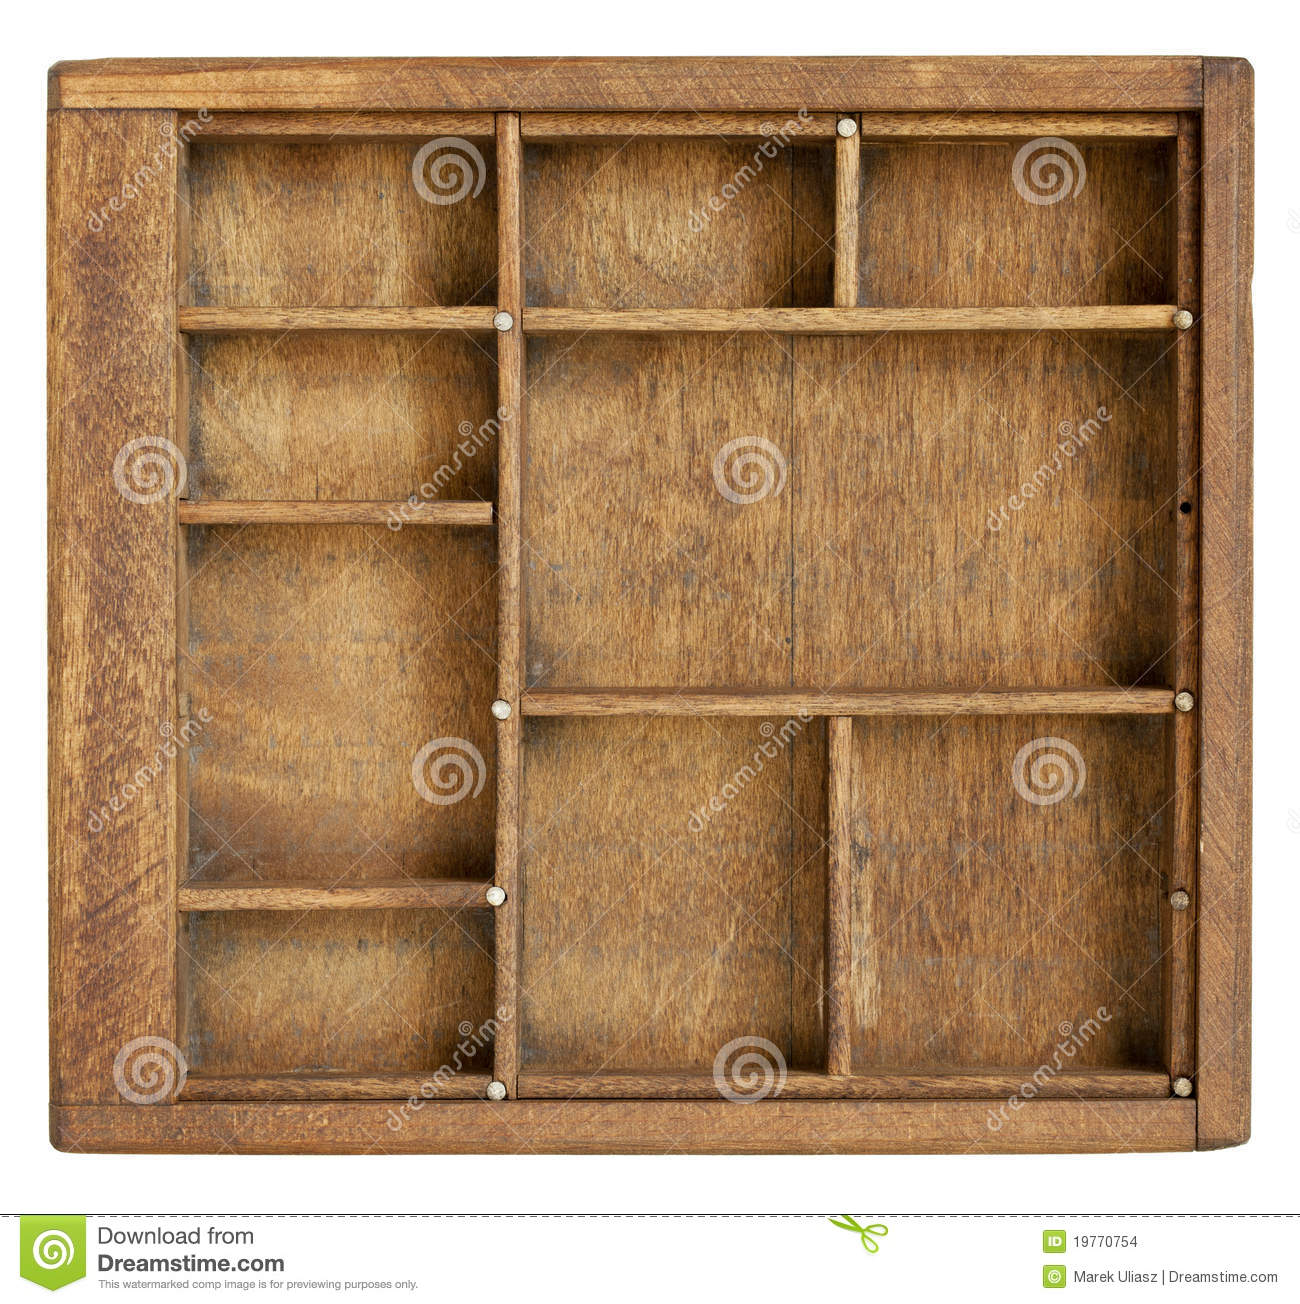 Marvelous photograph of Small vintage wood case (typesetter drawer) with dividers isolated on  with #85A724 color and 1300x1304 pixels